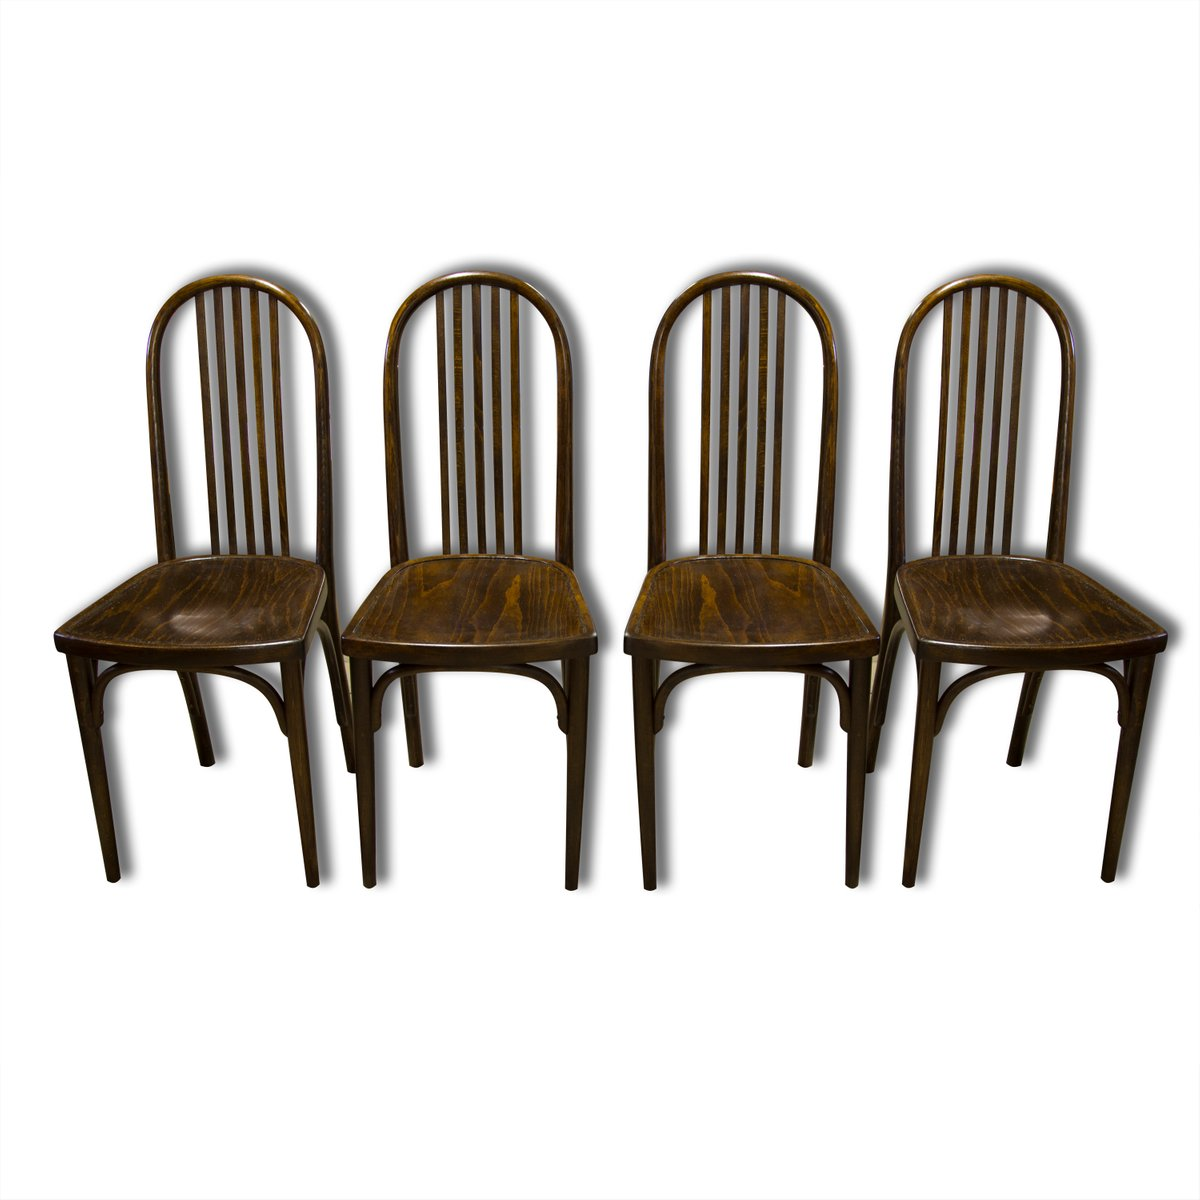 vintage nr 639 esszimmerst hle aus buche von josef hoffmann f r thonet 4er set bei pamono kaufen. Black Bedroom Furniture Sets. Home Design Ideas